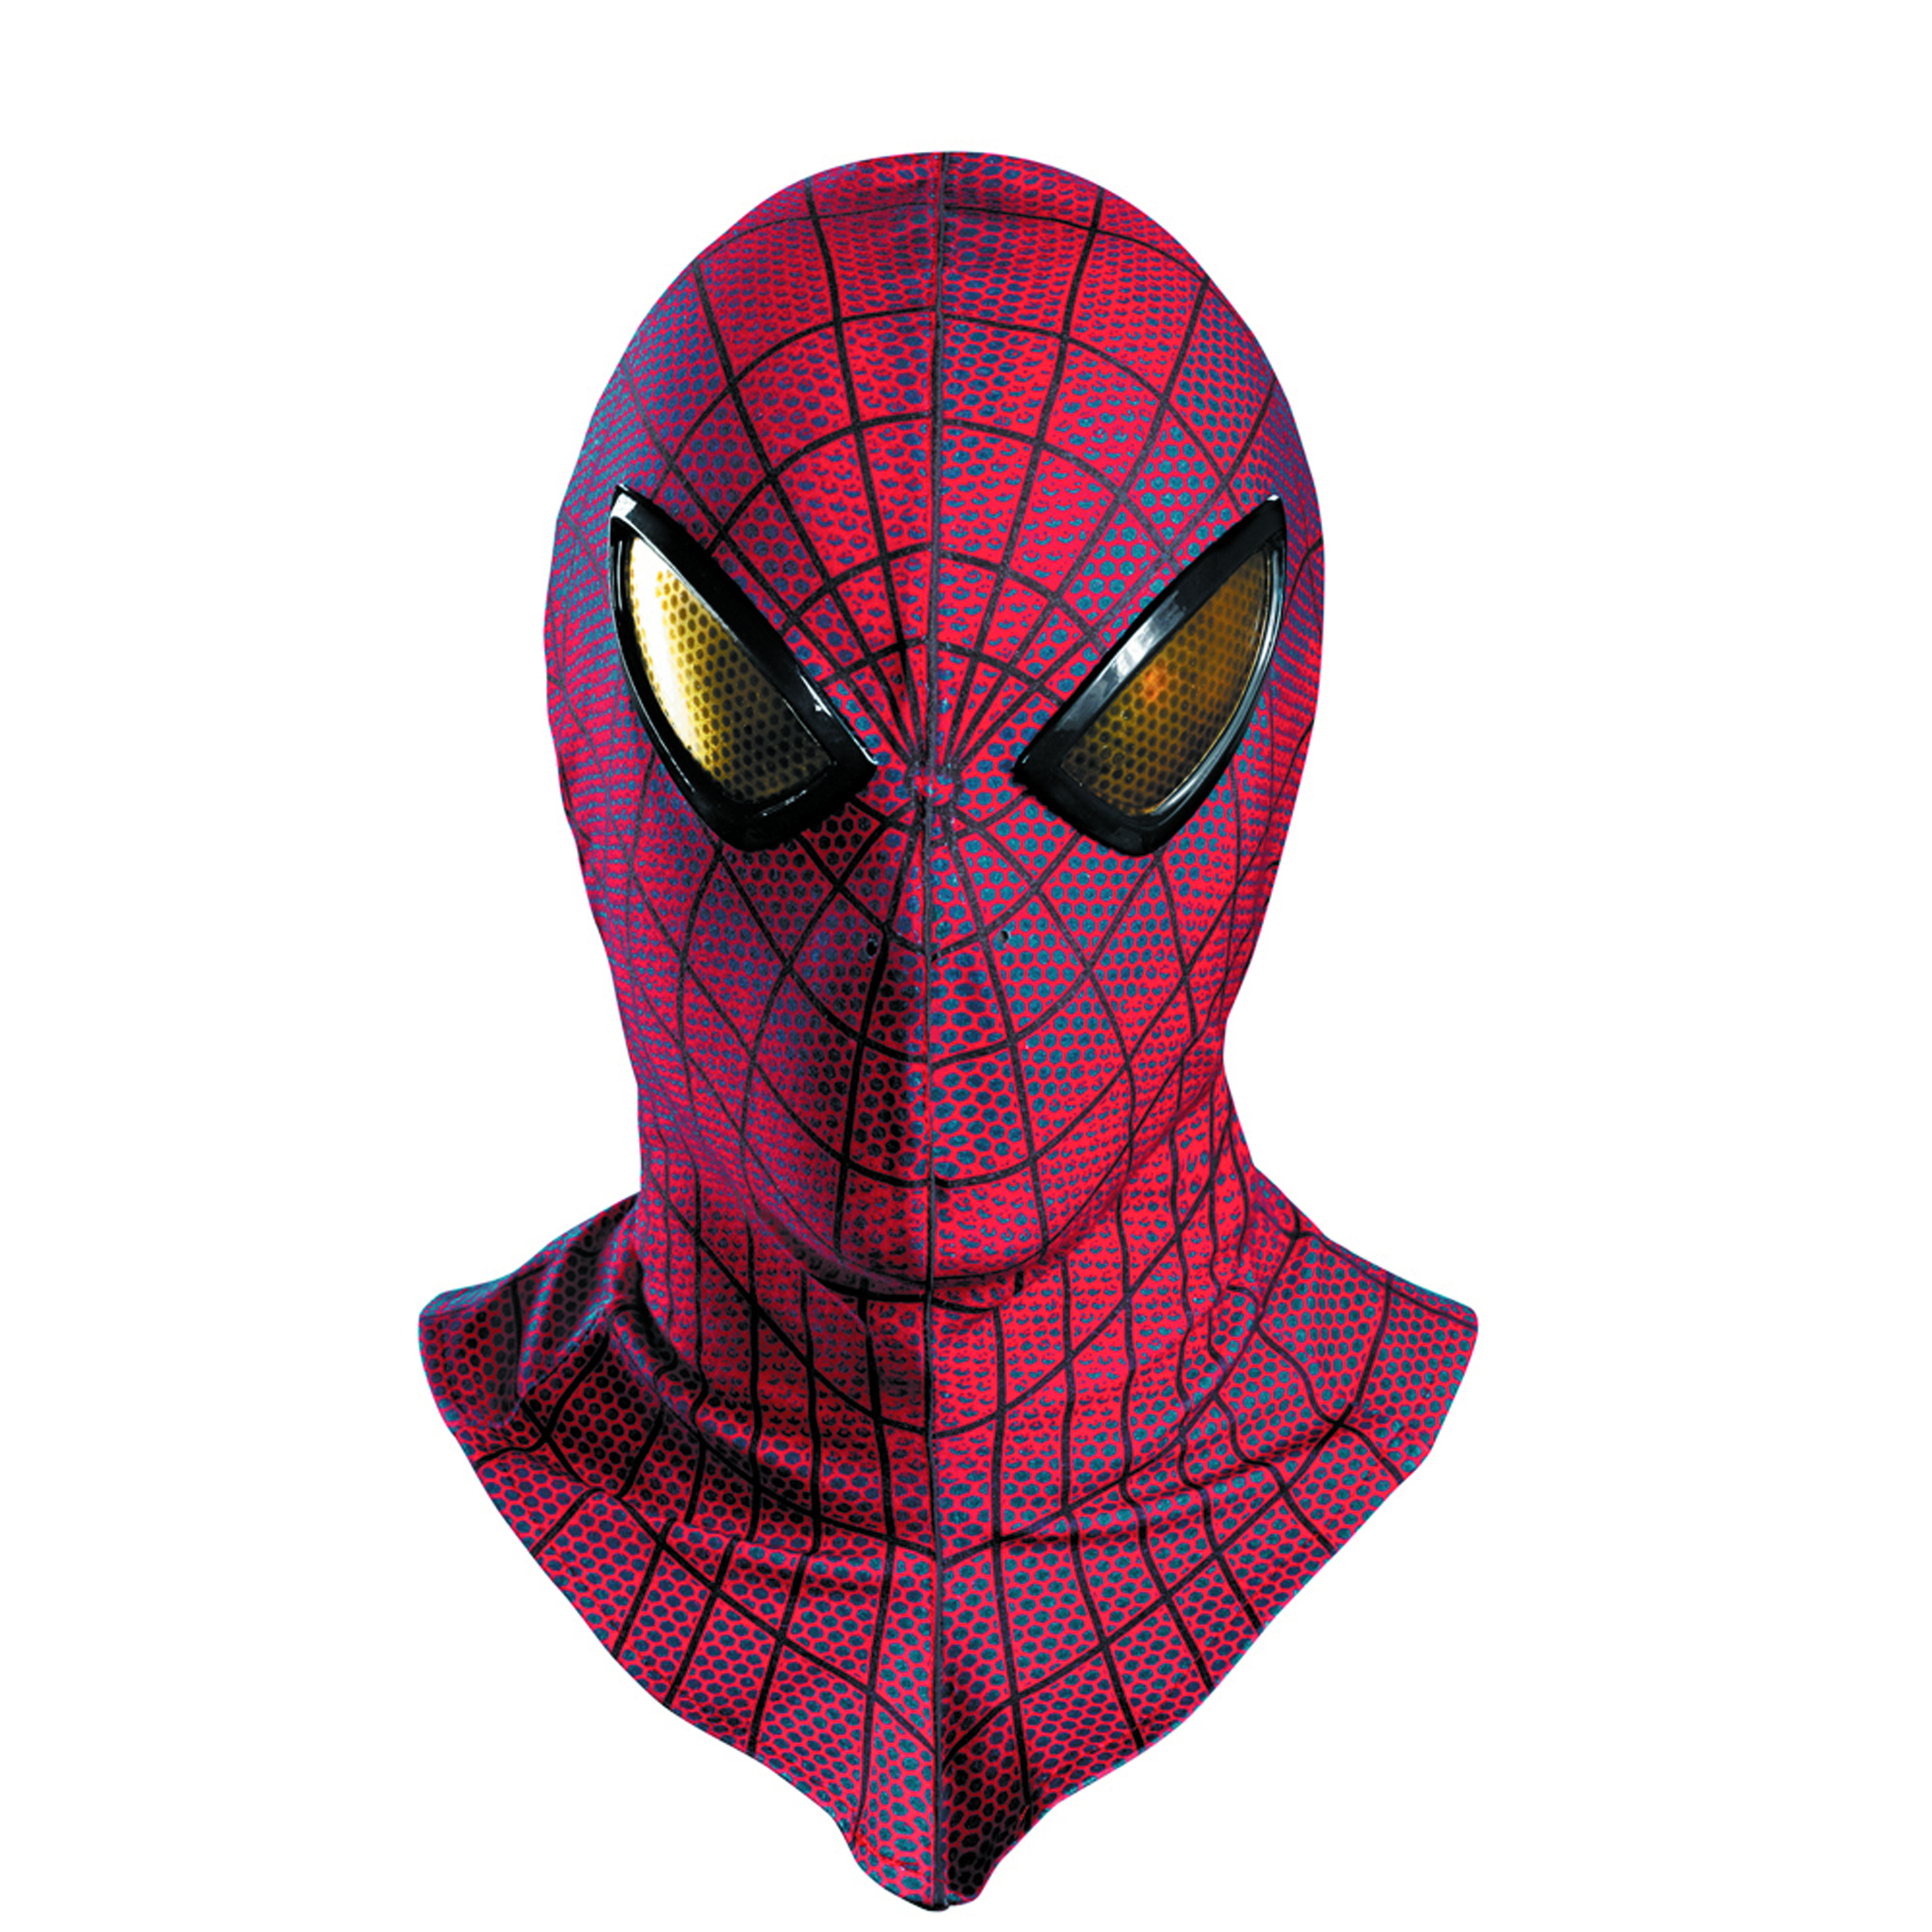 AMAZING SPIDER-MAN ADULT DELUXE MASK